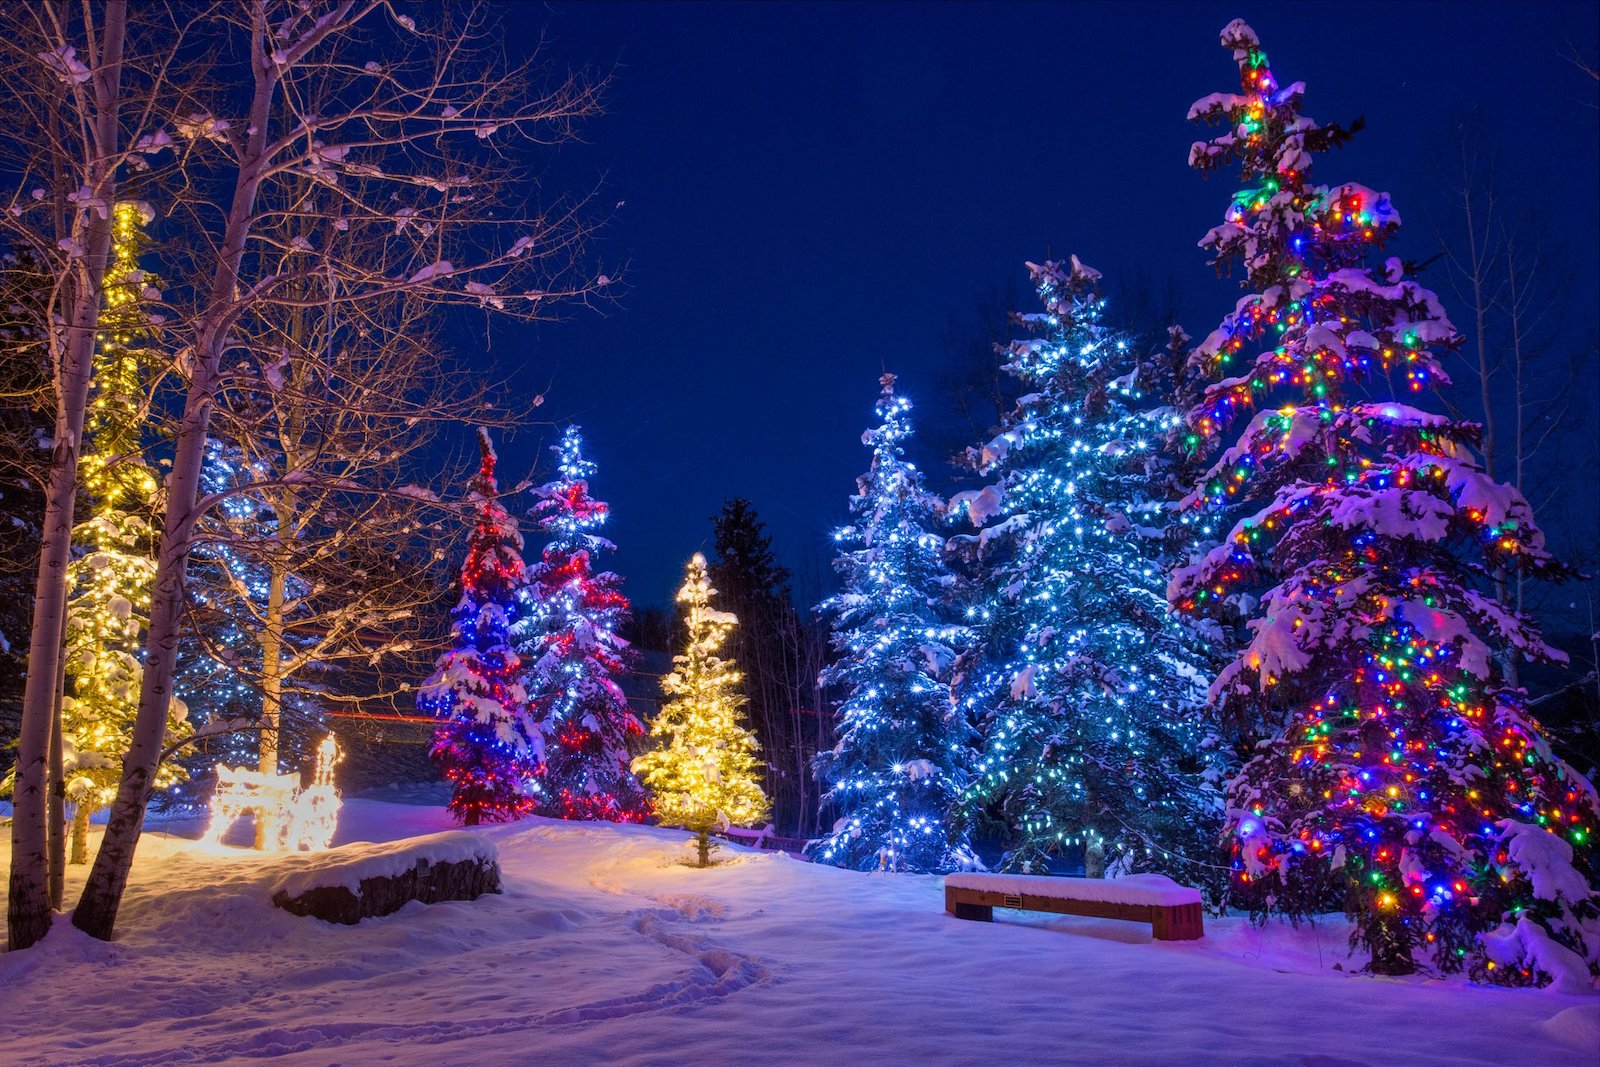 Image of illuminated trees in Aspen Snowmass, Colorado during winter